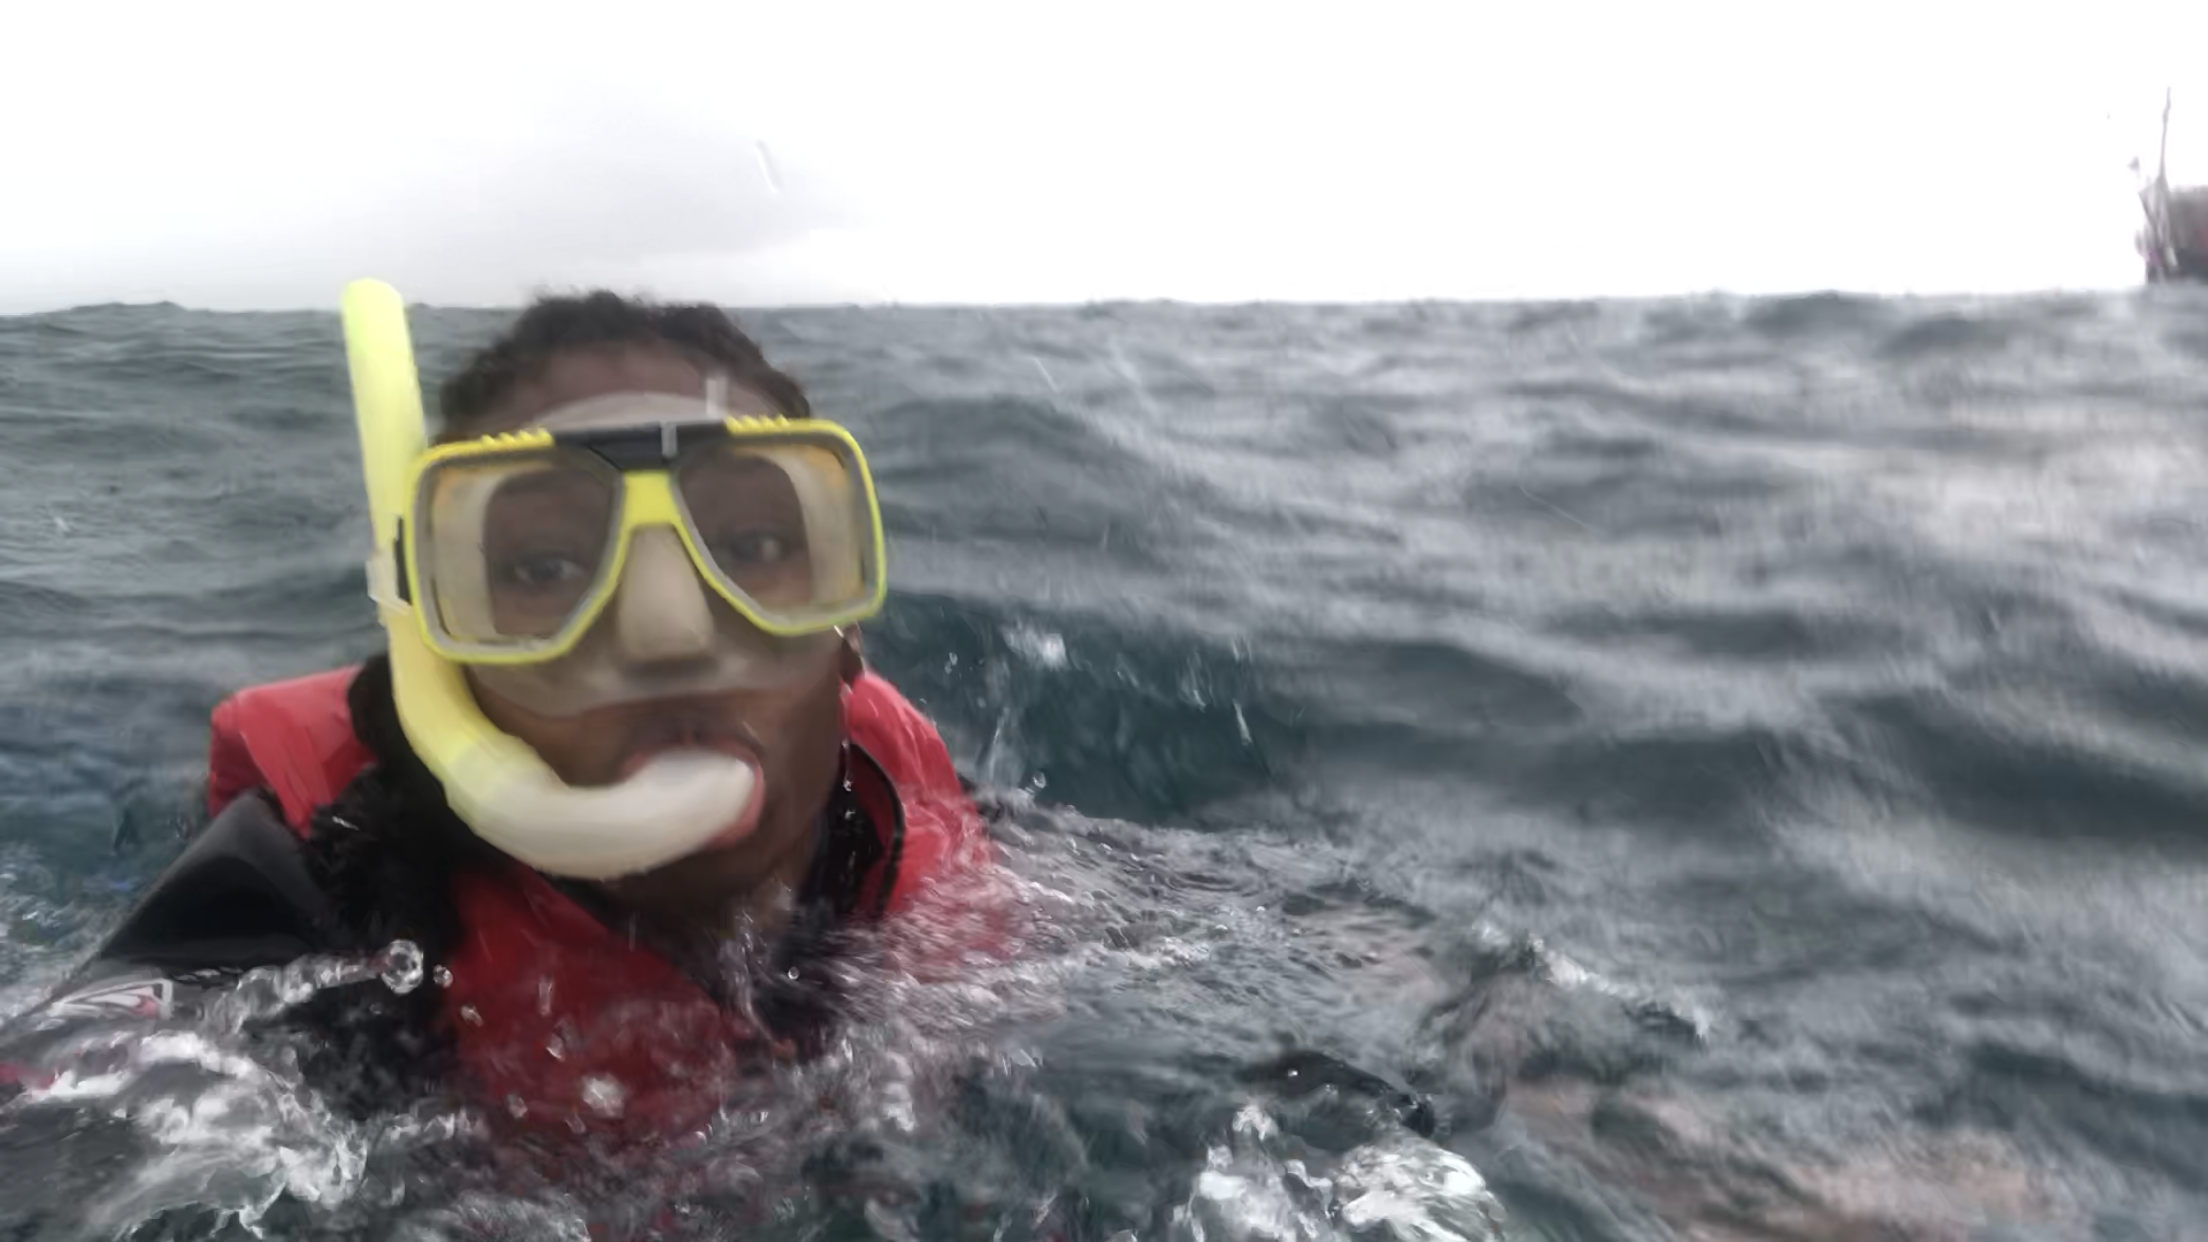 Just snorkeling, swimming around the Great Barrier Reef!